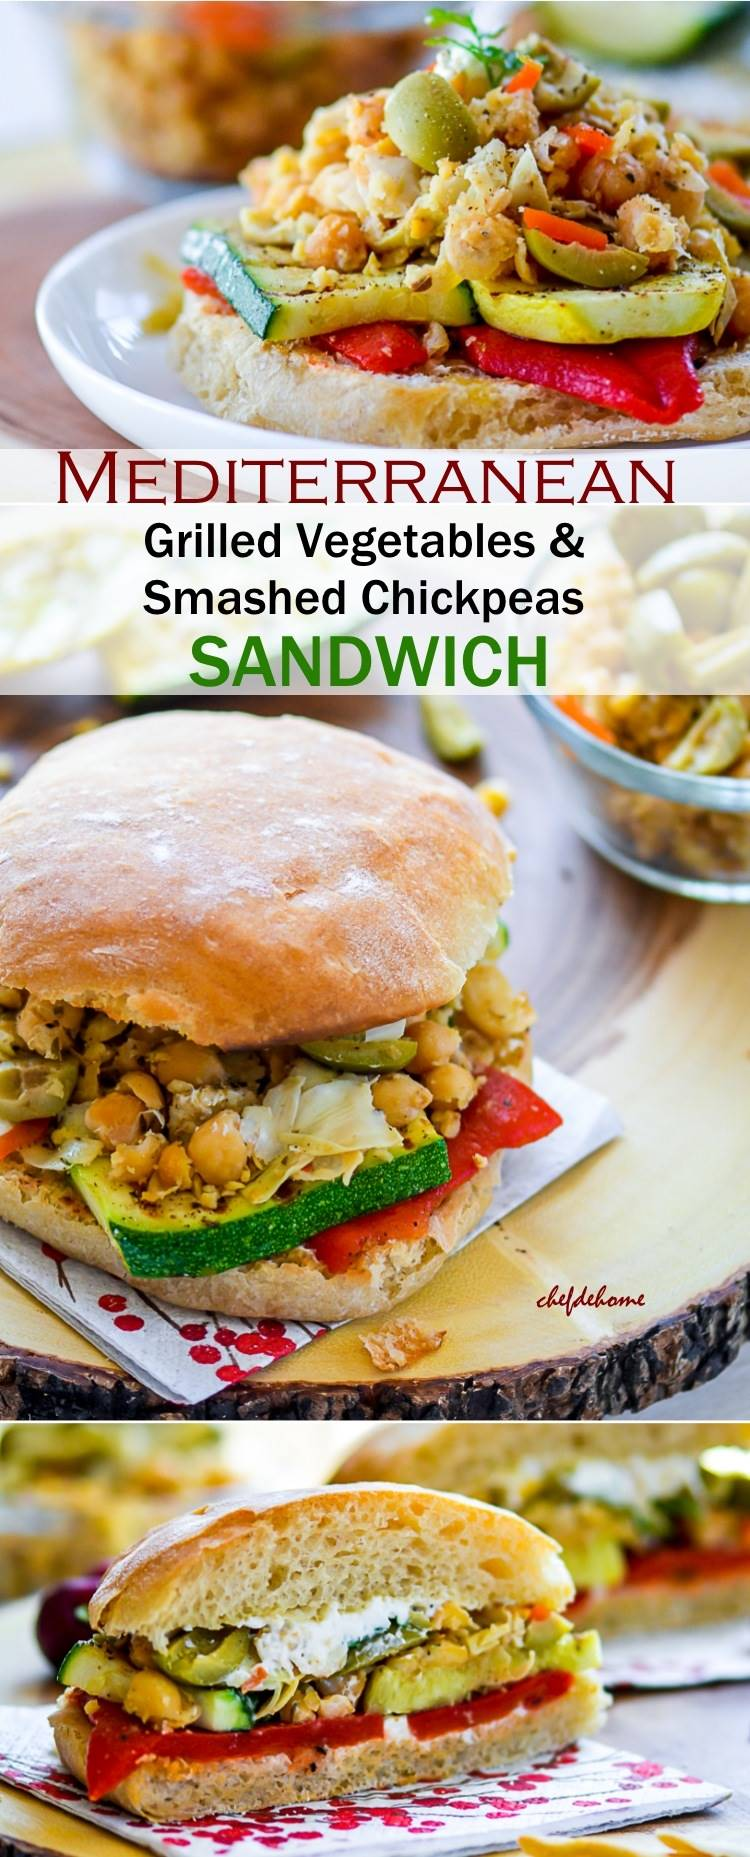 Grilled Zucchini and Summer Squash with Spiced Smashed Chickpeas Sandwich - Can be made vegan - Check the recipe | chefdehome.com